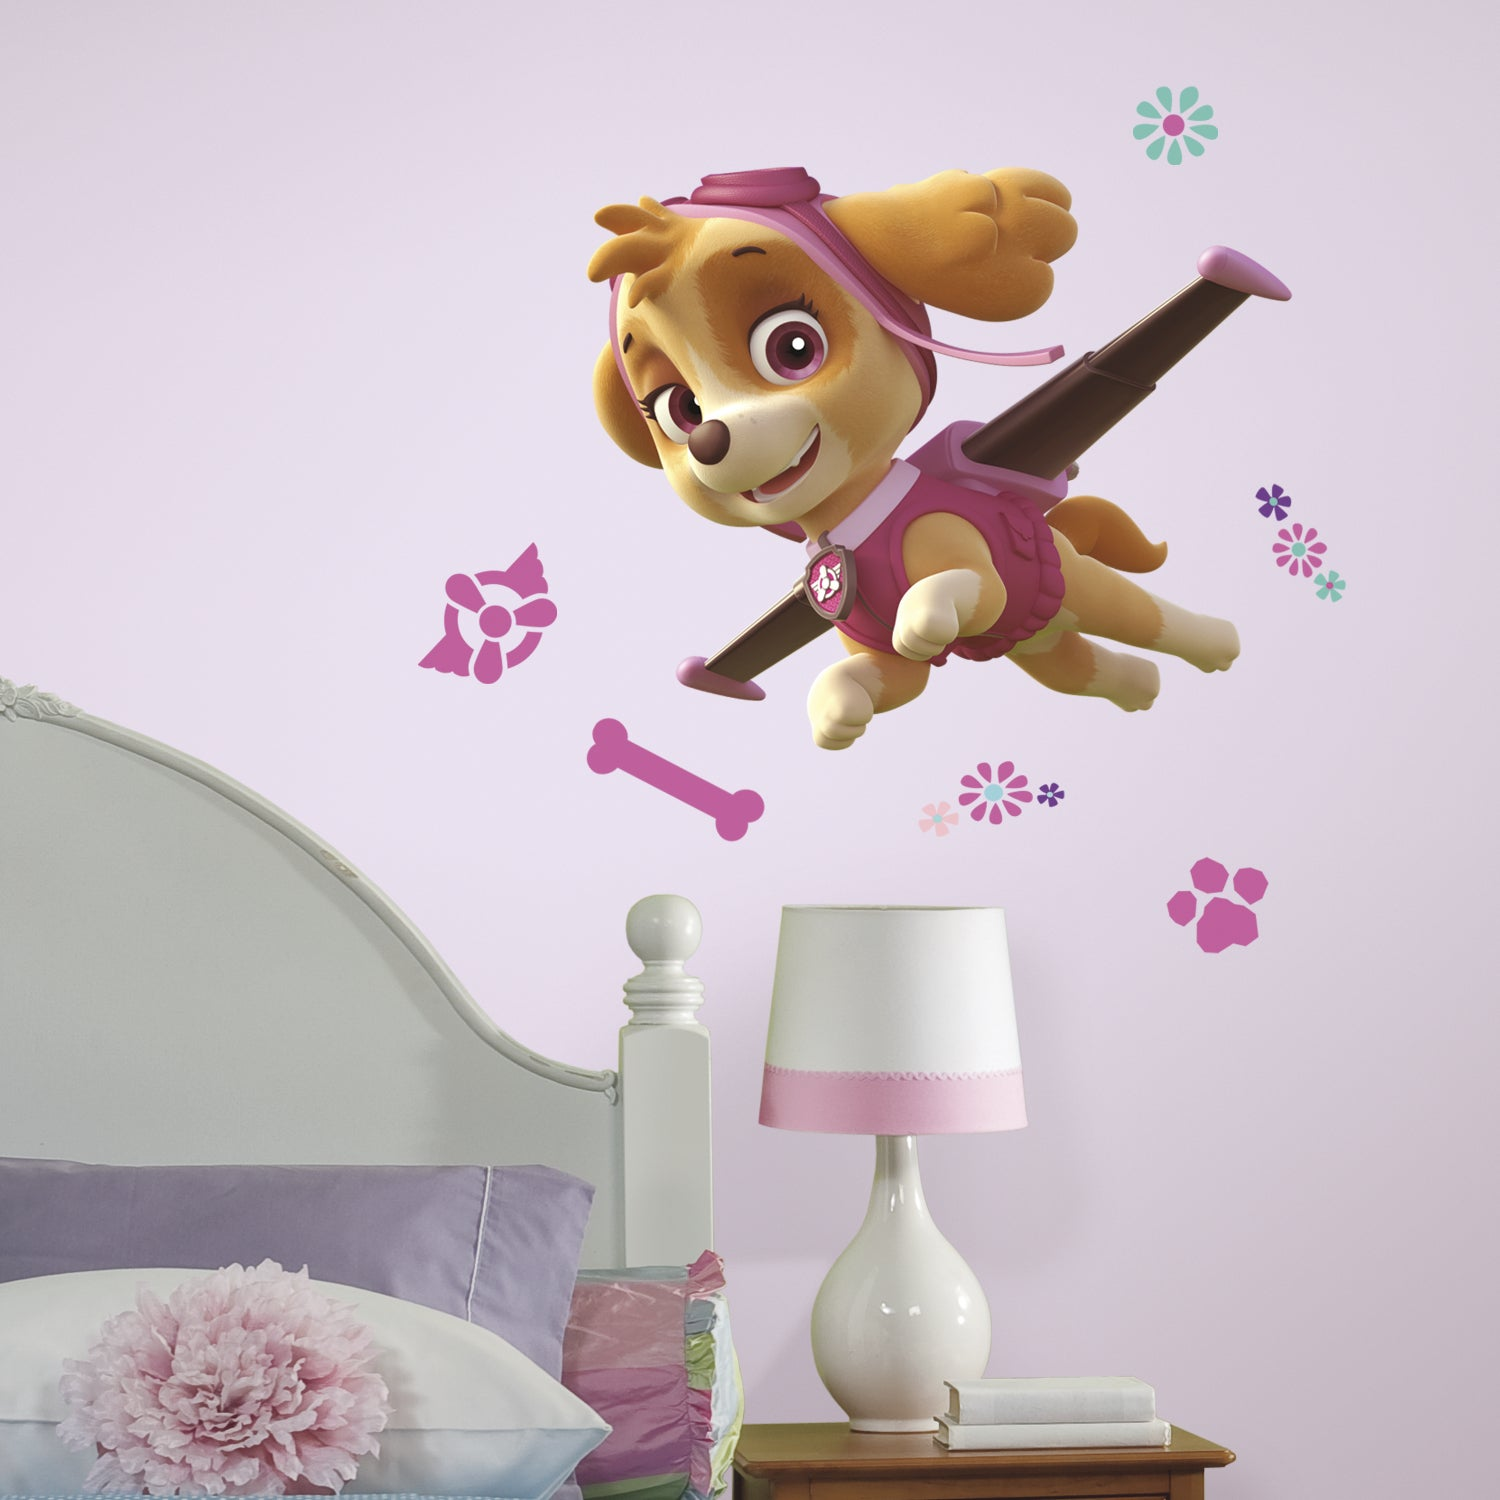 RoomMates Paw Patrol Skye Peel and Stick Giant Wall Decal...